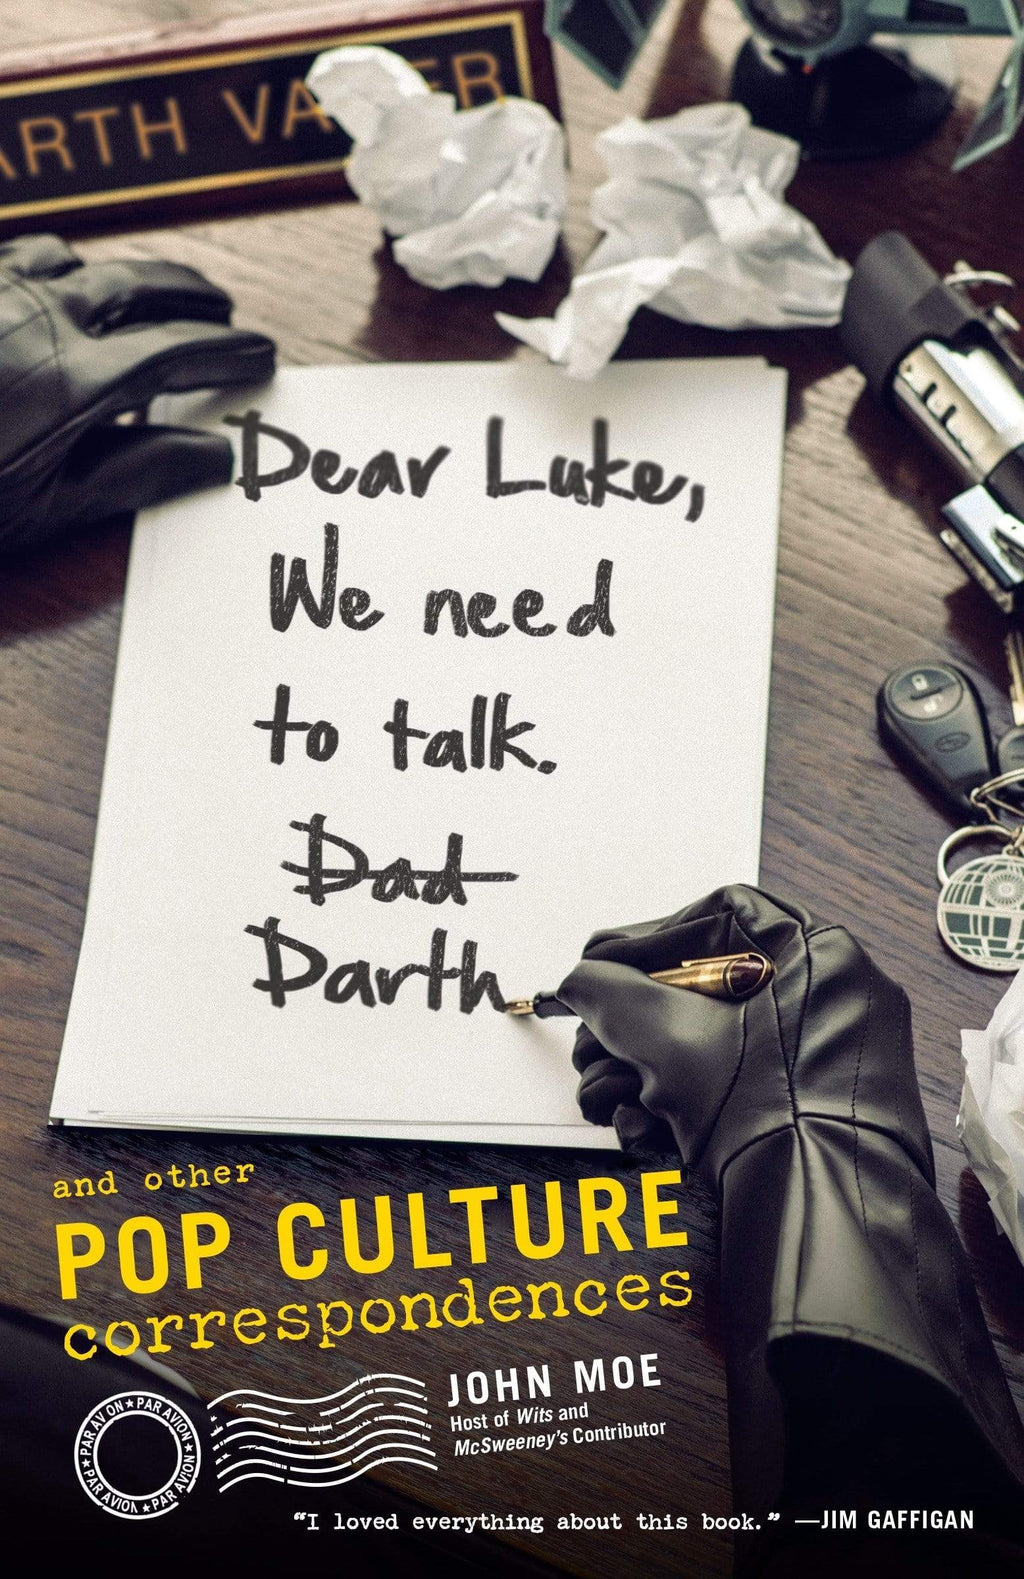 Marissa's Books & Gifts, LLC 9780385349109 Dear Luke, We Need To Talk, Darth: And Other Pop Culture Correspondences